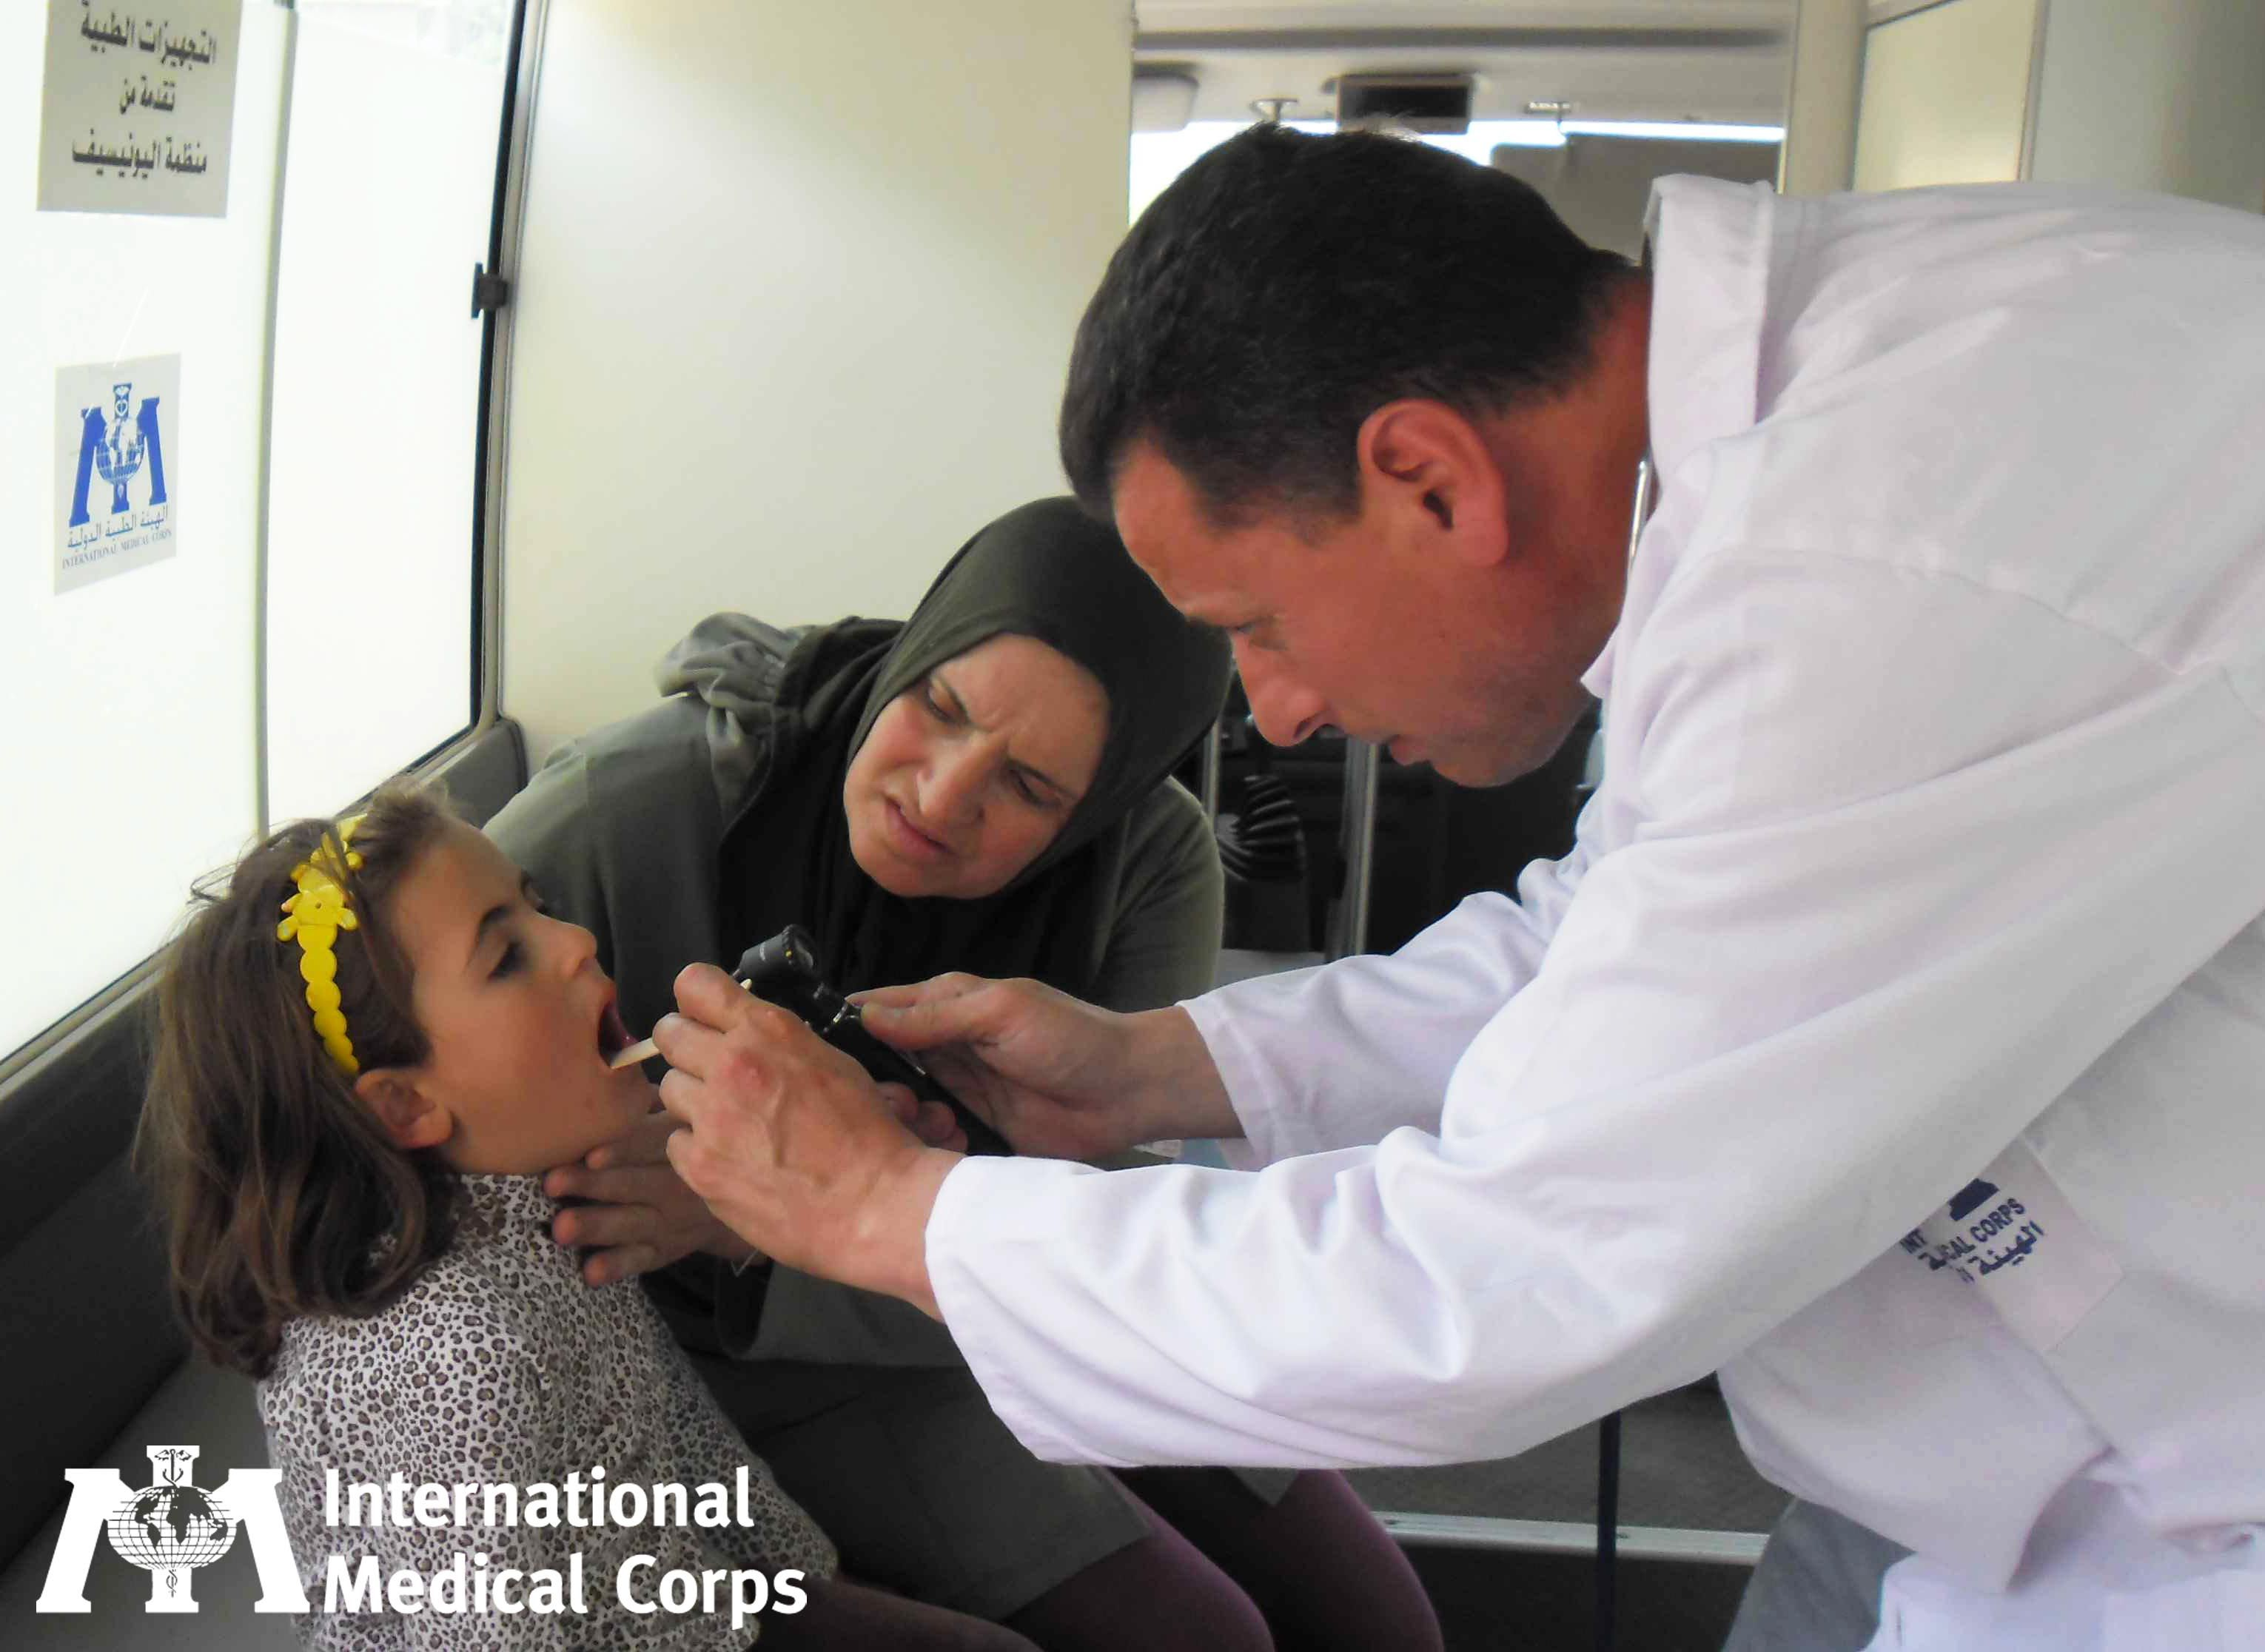 January 3:  Getting a checkup at a mobile medical unit in Lebanon.  Photo: International Medical Corps Staff, Lebanon 2012